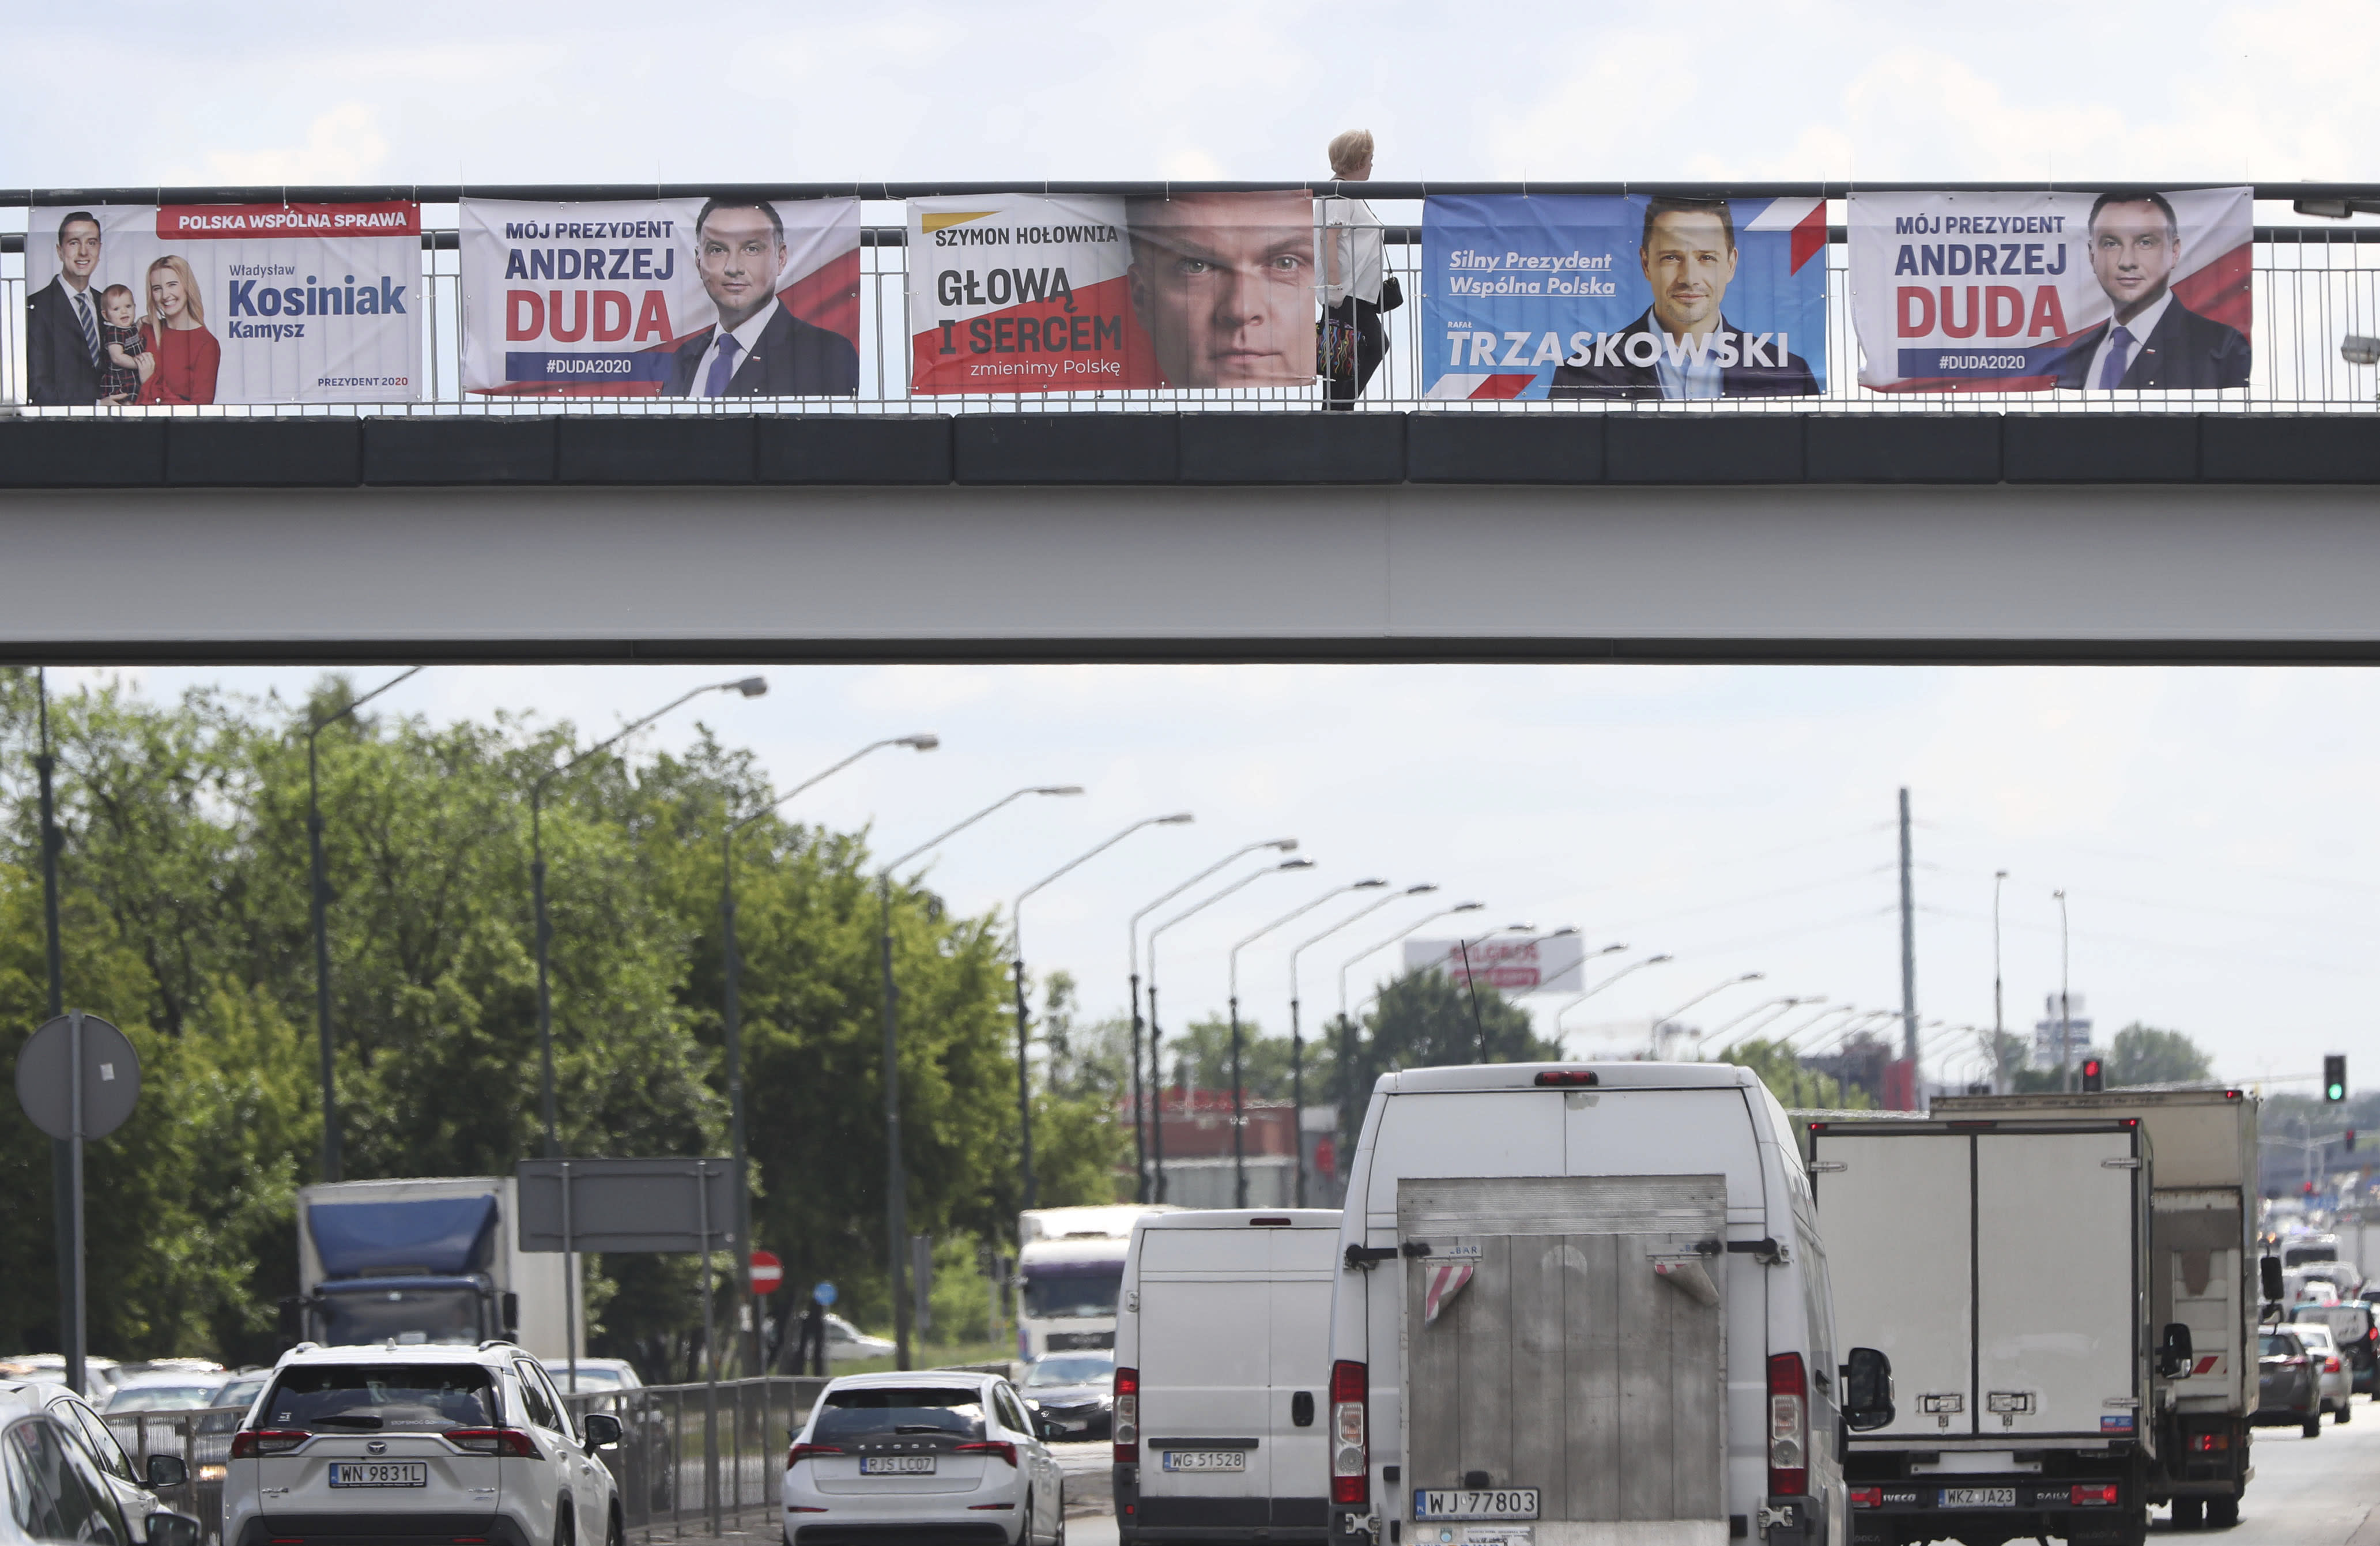 Electoral posters for Poland's conservative President Andrzej Duda and his three main challengers in Sunday's presidential election placed above a major thoroughfare n Warsaw, Poland, Tuesday, June 23, 2020.Centrist Warsaw Mayor Rafal Trzaskowski is considered Duda's main challenger who could face the incumbent in a runoff.(AP Photo/Czarek Sokolowski)